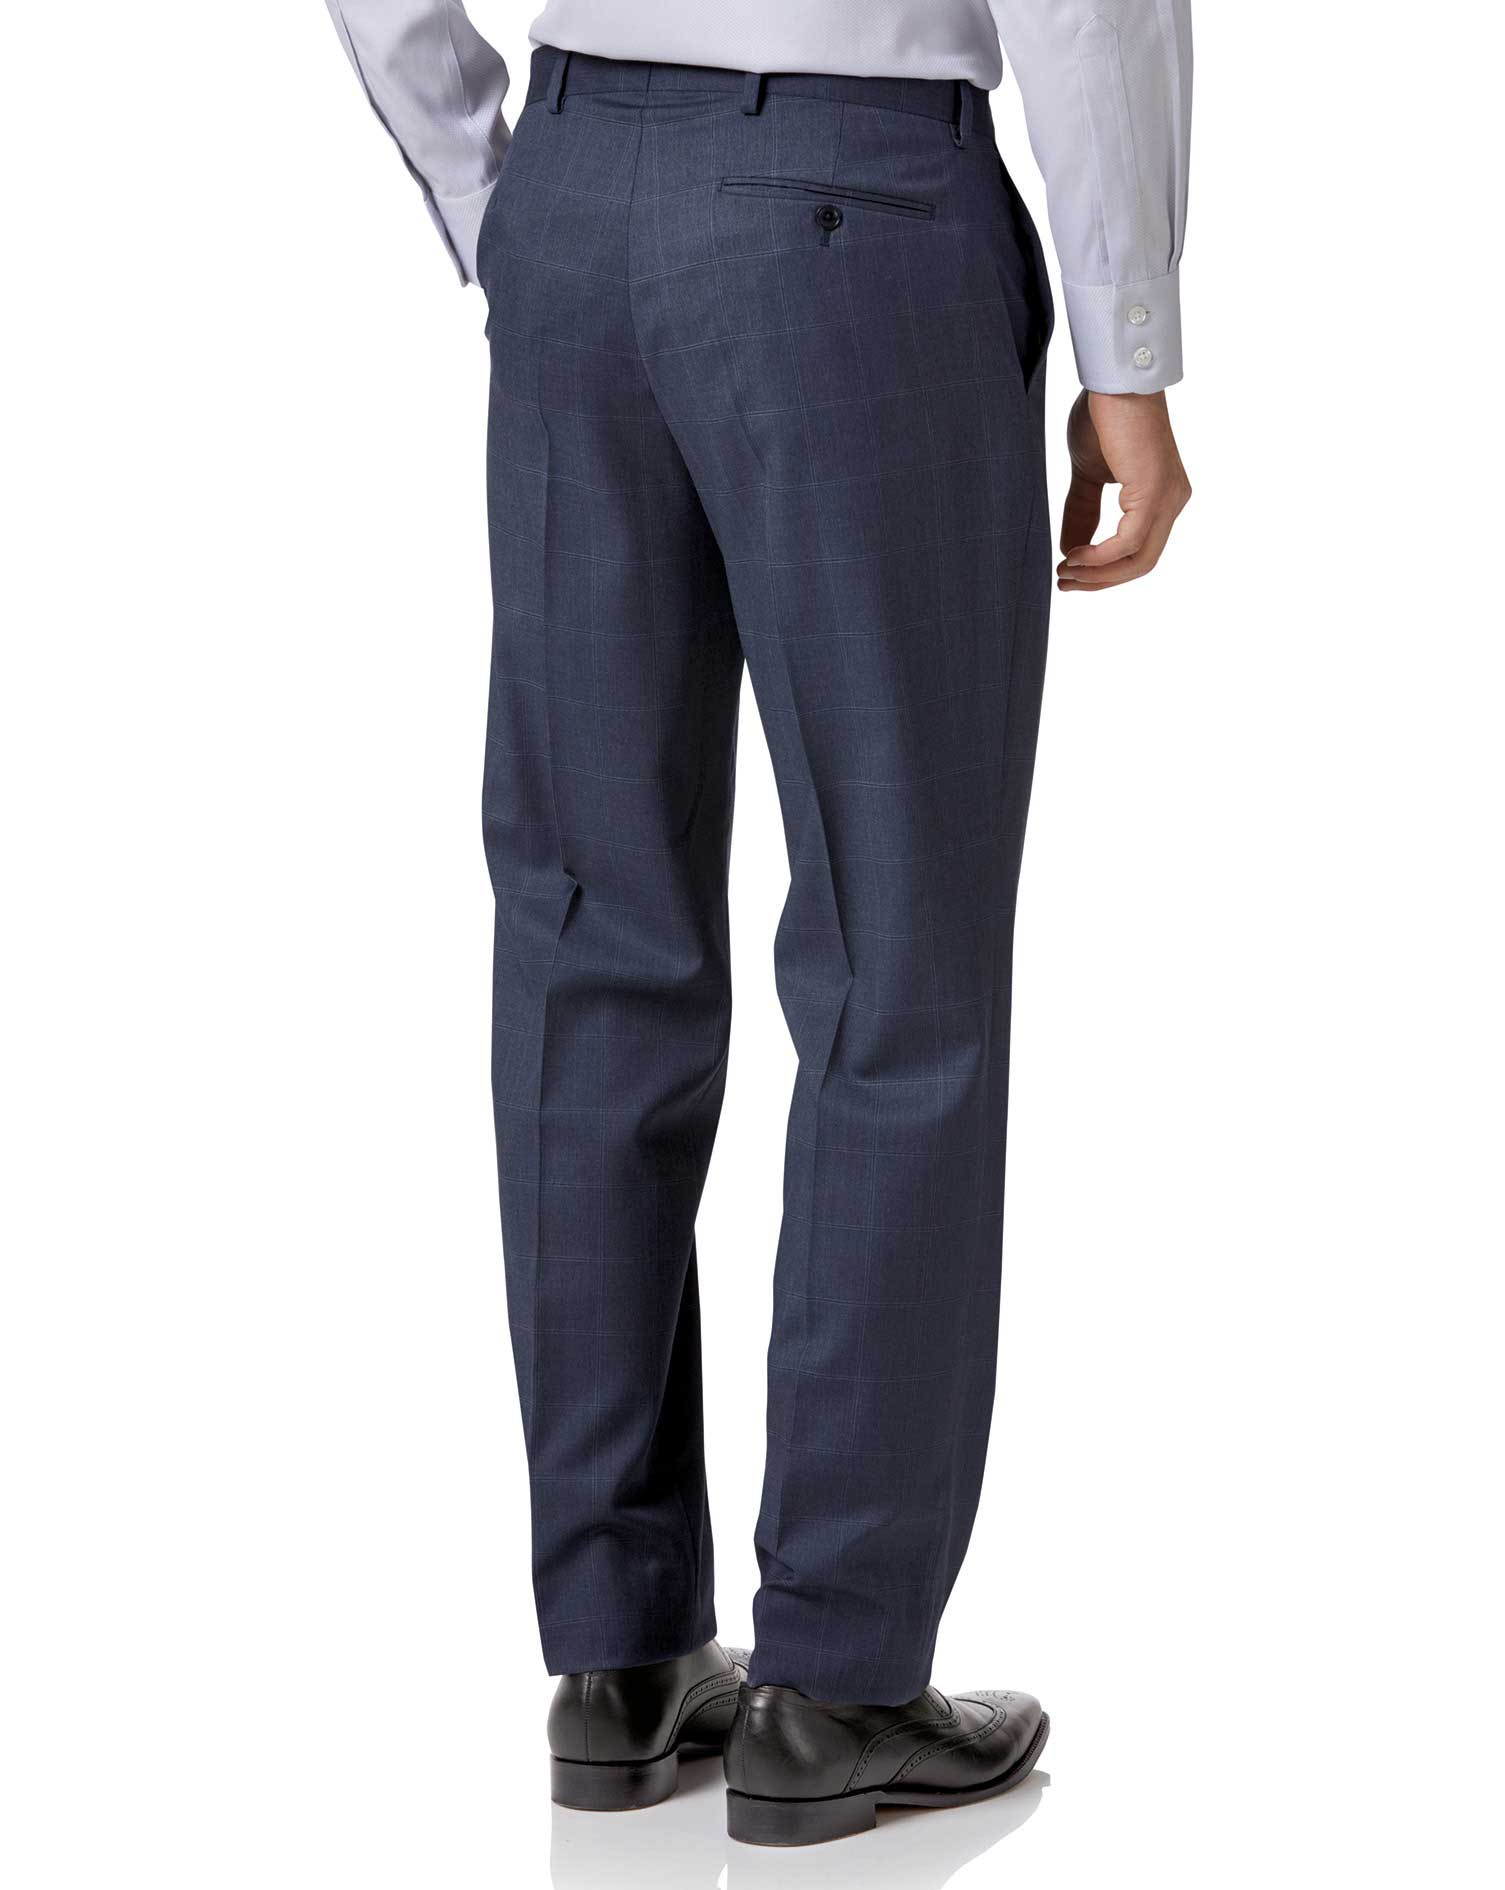 Airforce blue classic fit Italian suit pants